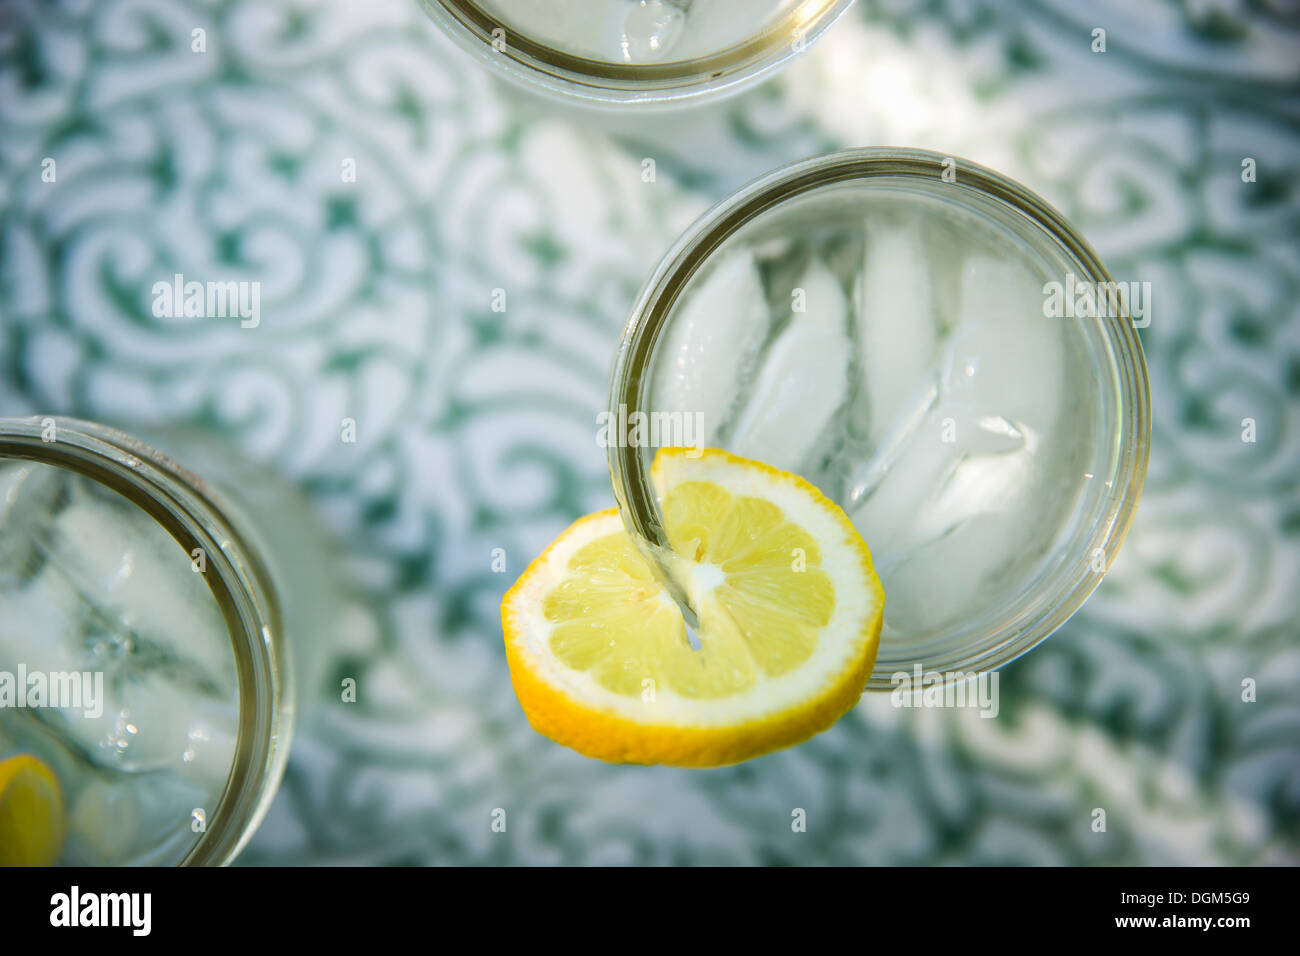 Making lemonade Overhead shot of lemonade glasses fresh slice of lemon in edge of glass Organic lemonade drinks Stock Photo